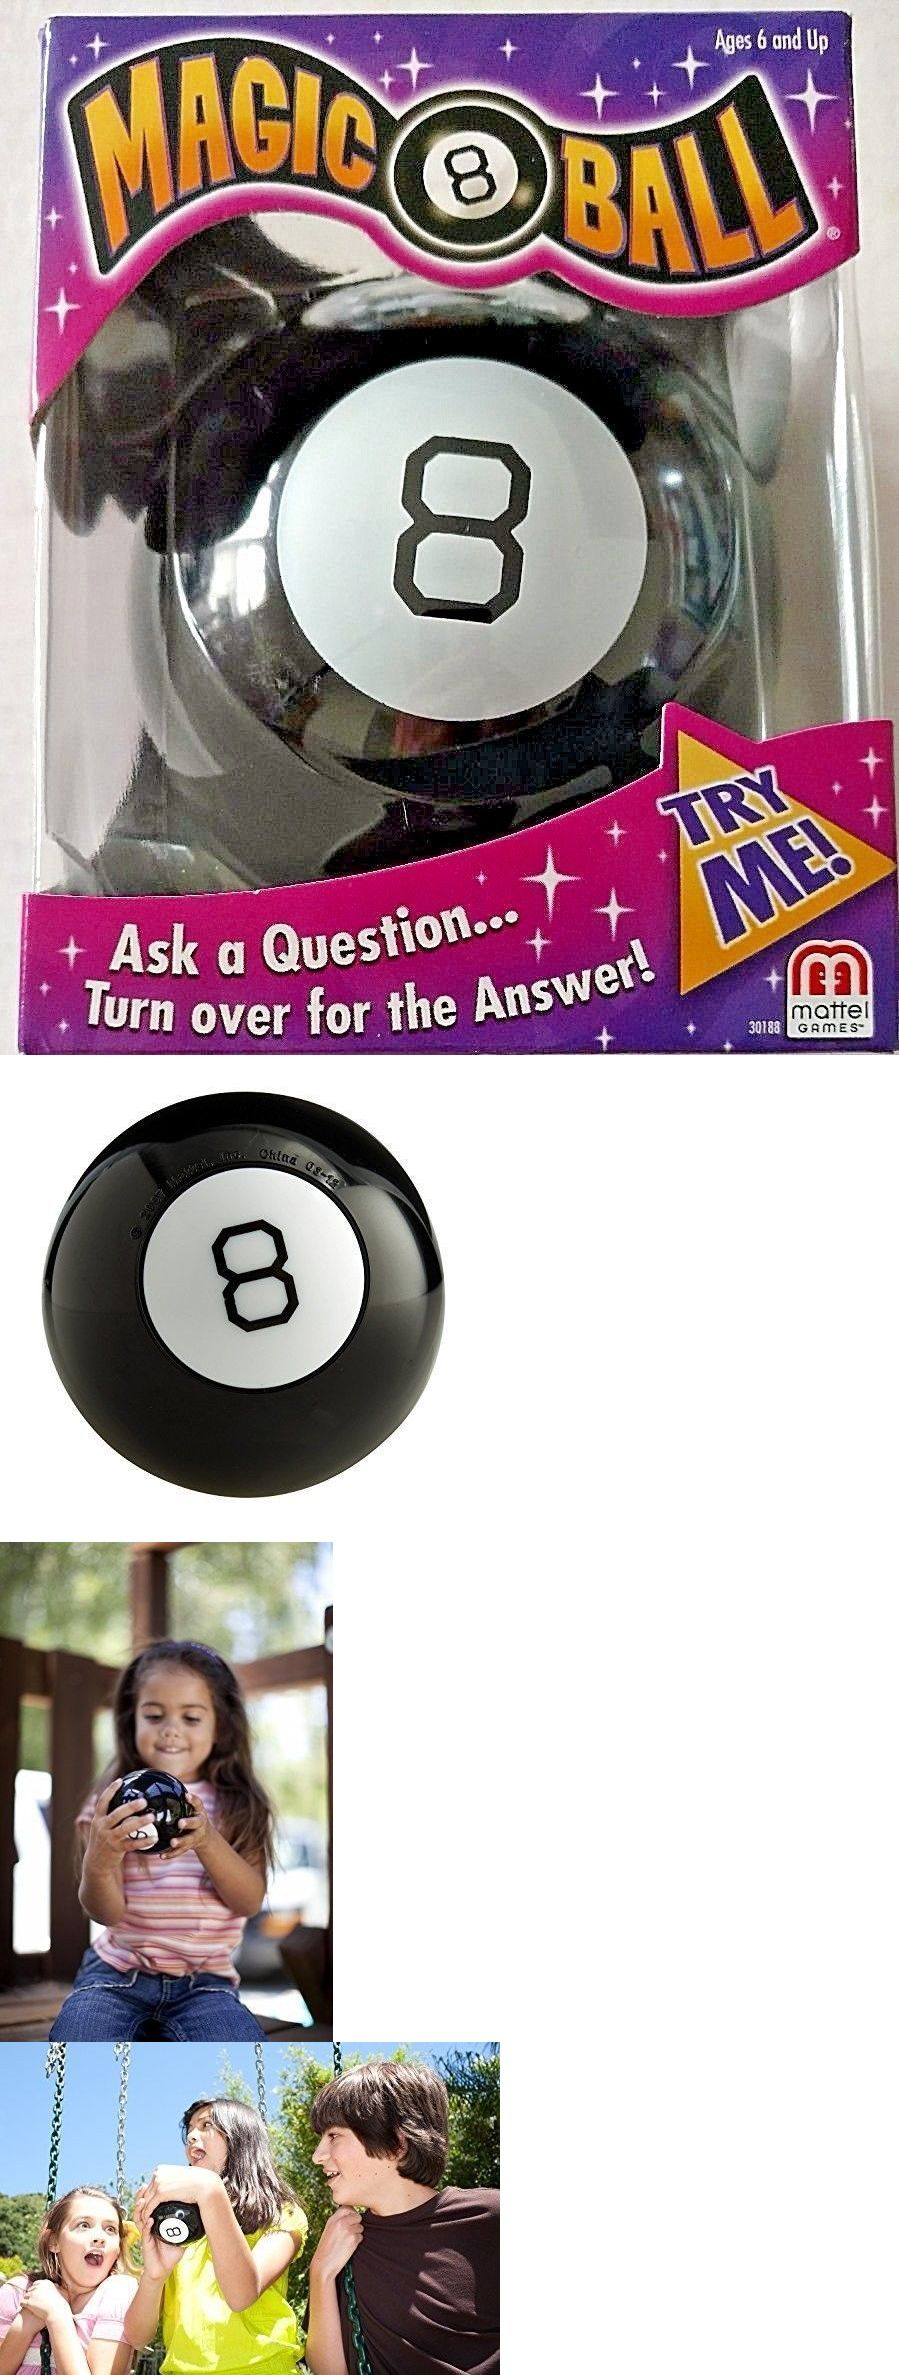 Classic Mattel Magic 8 Ball Toy Vintage Game Fortune Teller Kids Lucky Answers